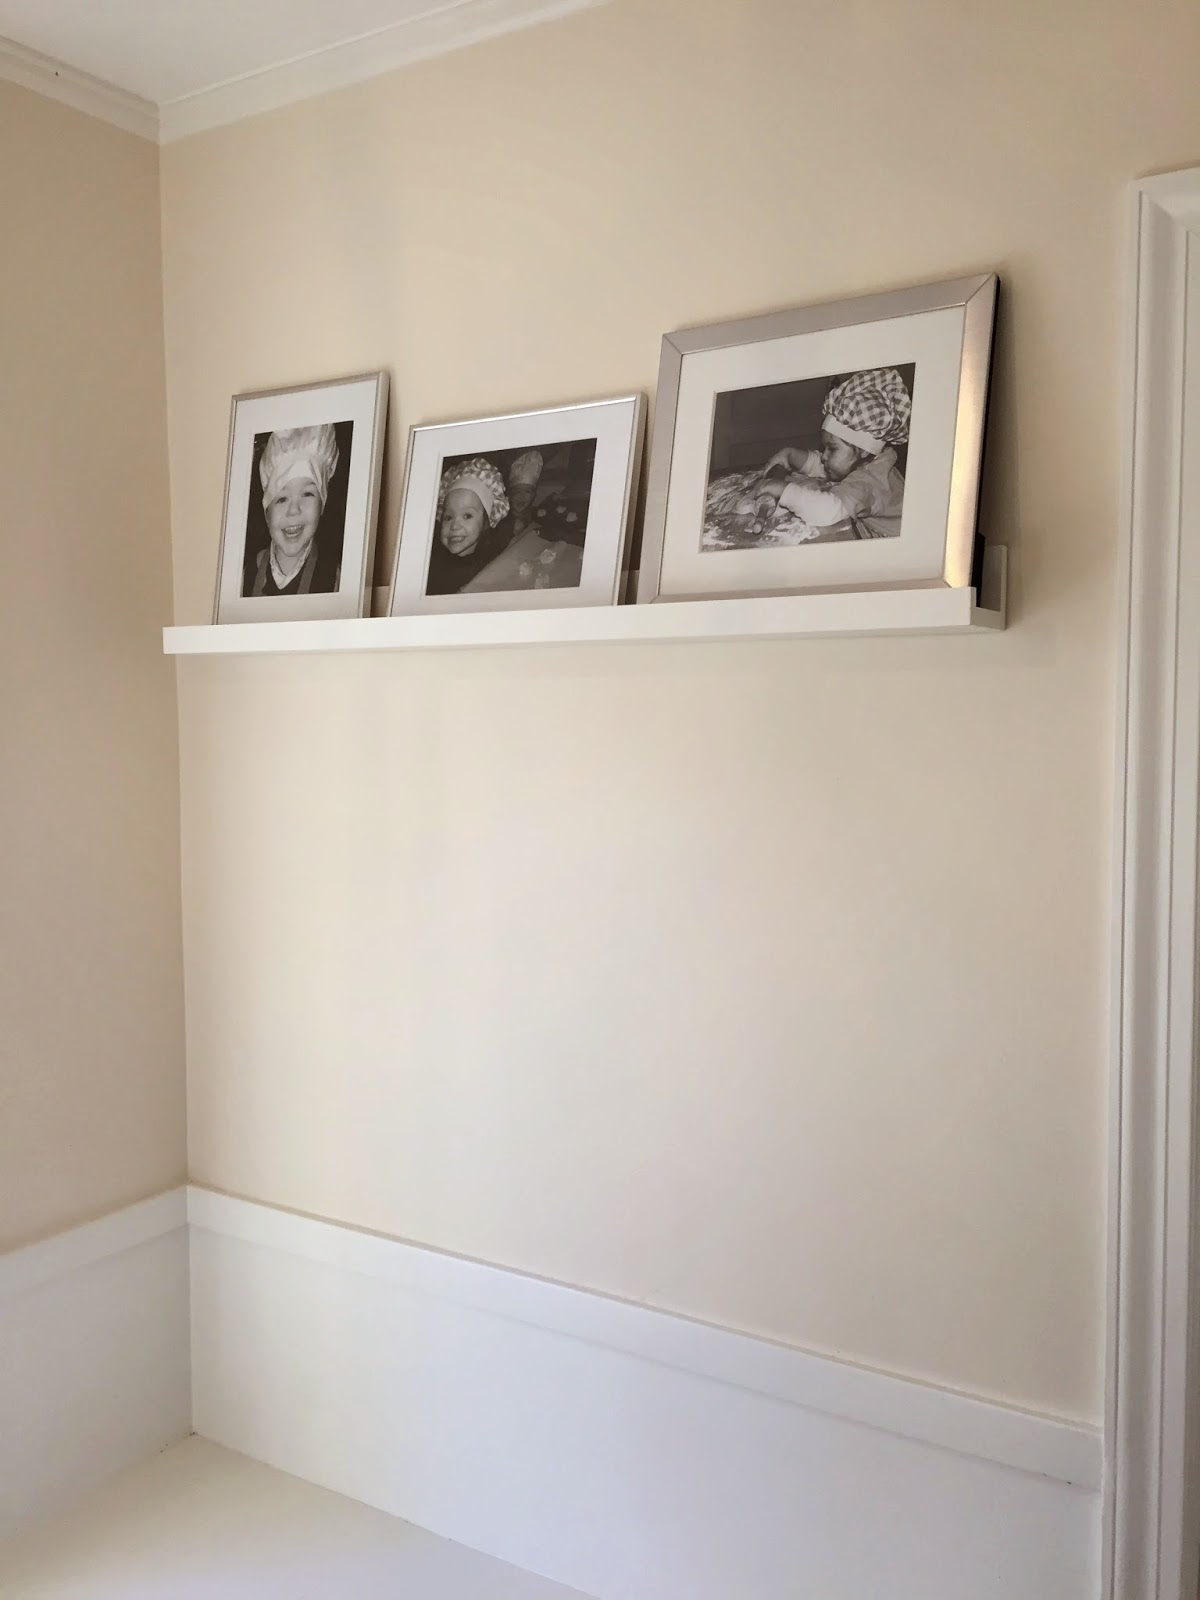 How to make a gallery ledge - how to build a photo shelf